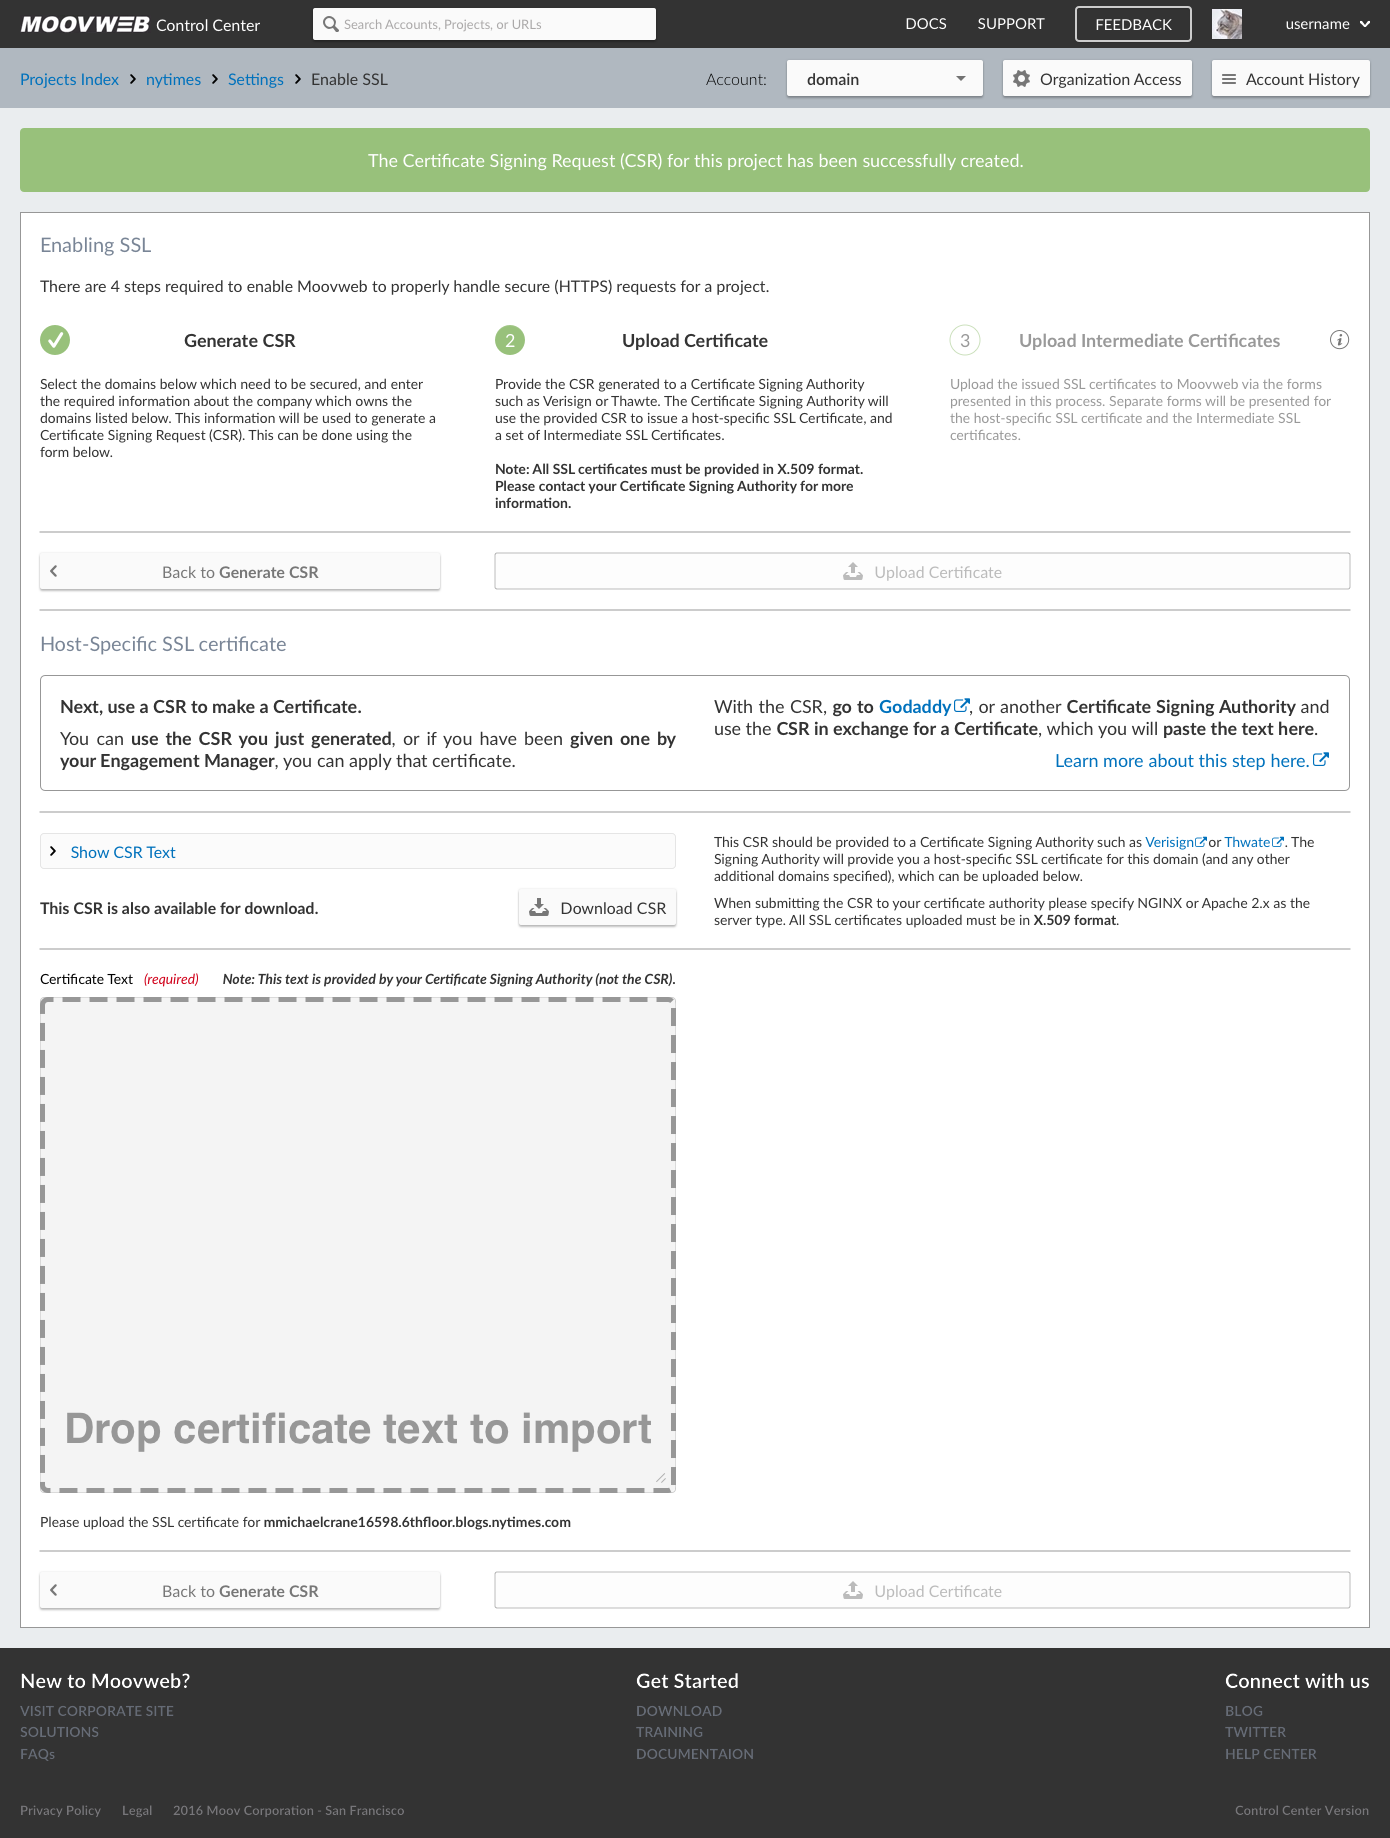 Upload Certificate - Hide Text Drag and Drop